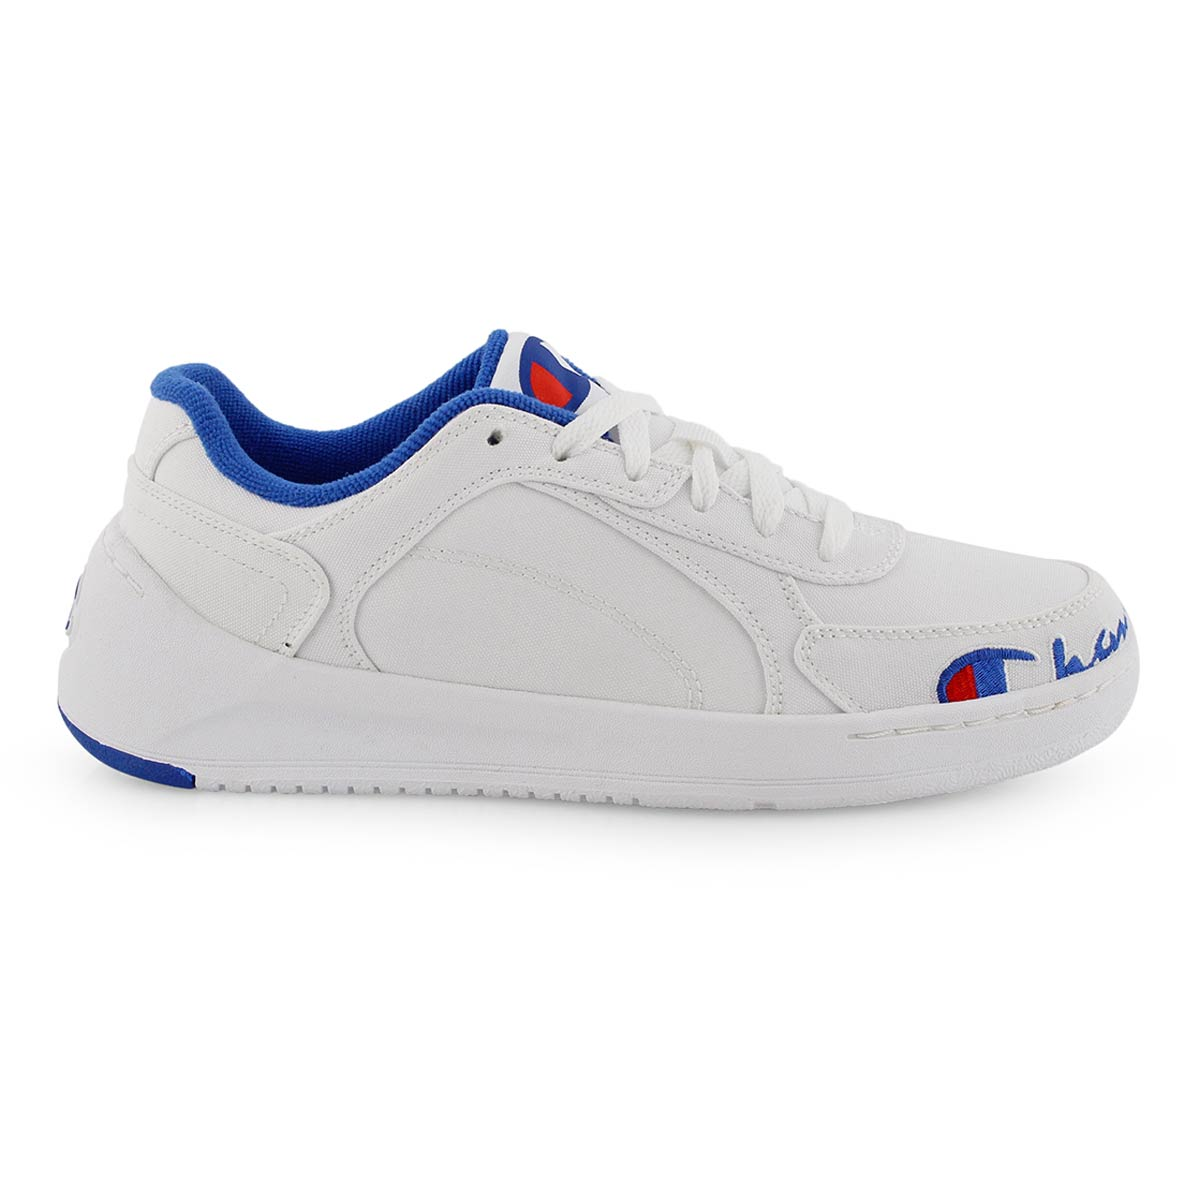 Lds Court Low white lace up sneaker